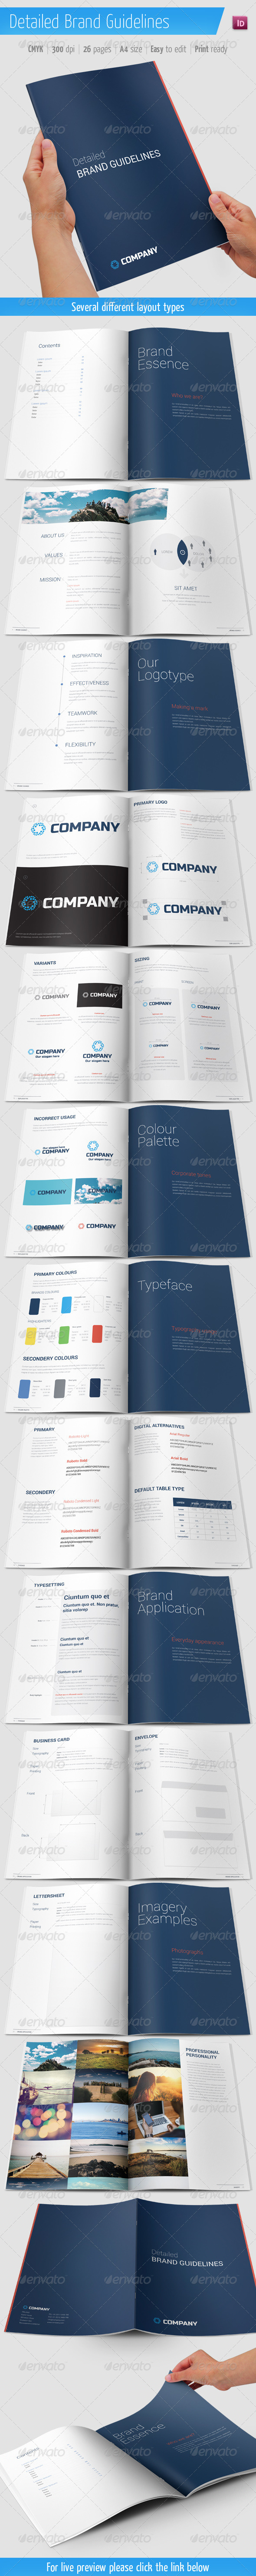 GraphicRiver Detailed Brand Guidelines 5898210